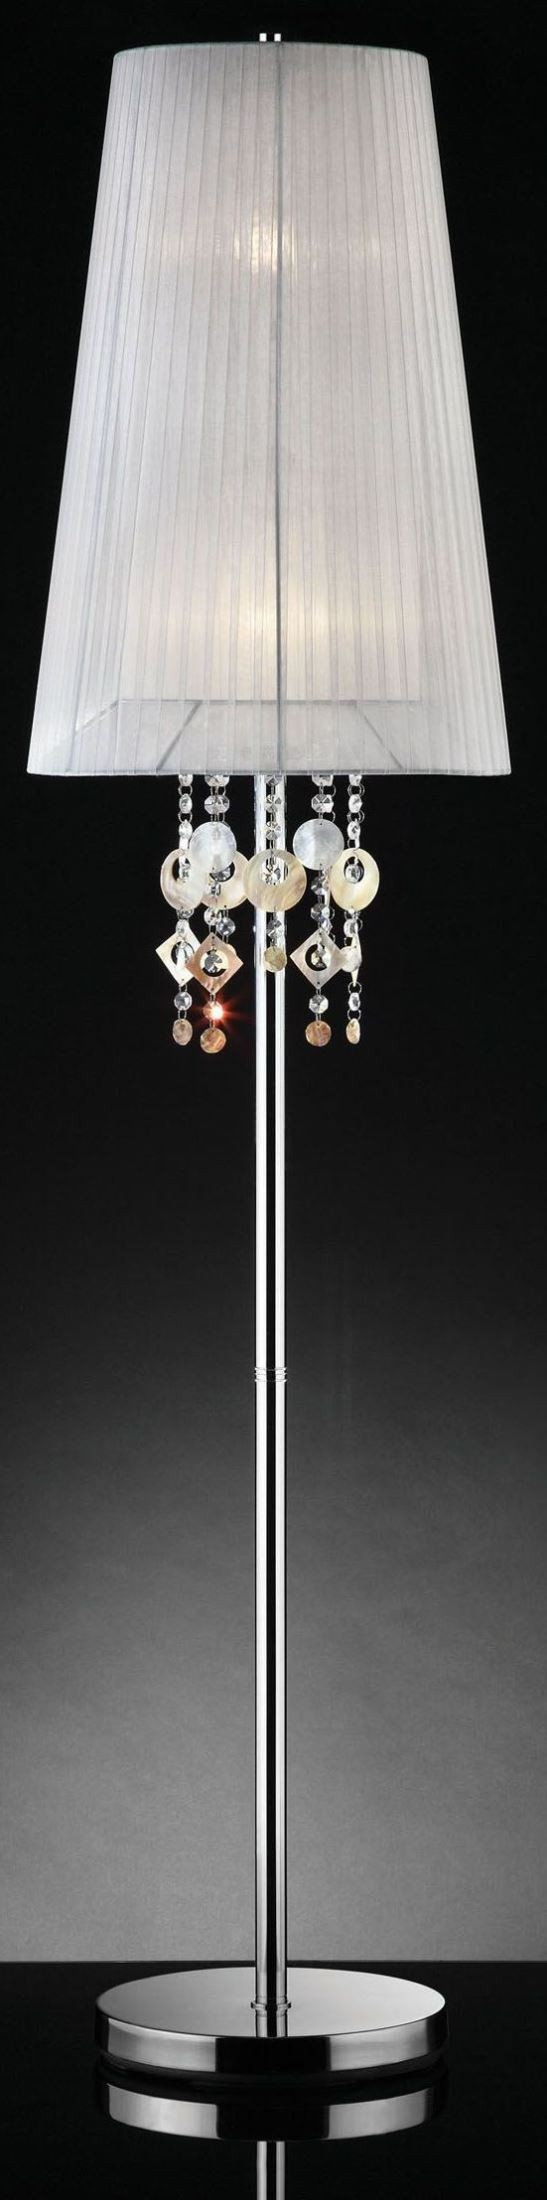 lucille chrome hanging crystal floor lamp from furniture of america. Black Bedroom Furniture Sets. Home Design Ideas